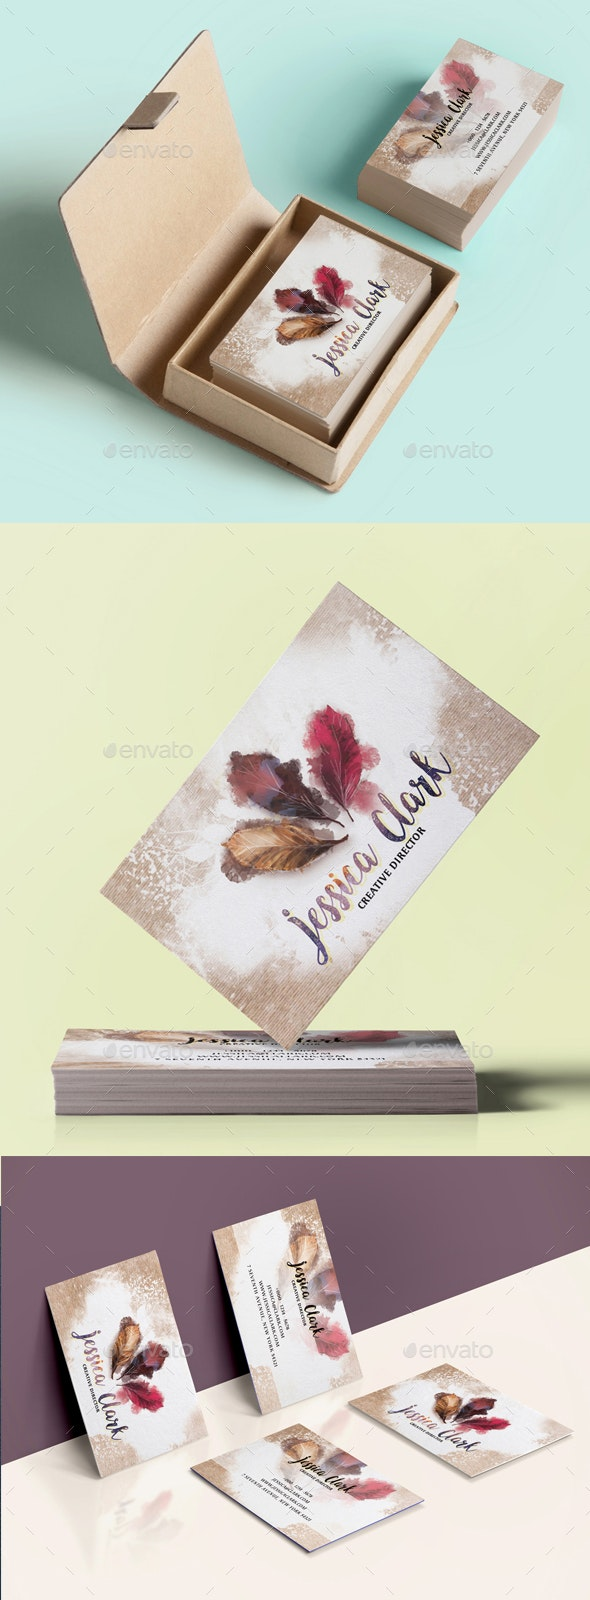 Warm Watercolor Business Card - Creative Business Cards